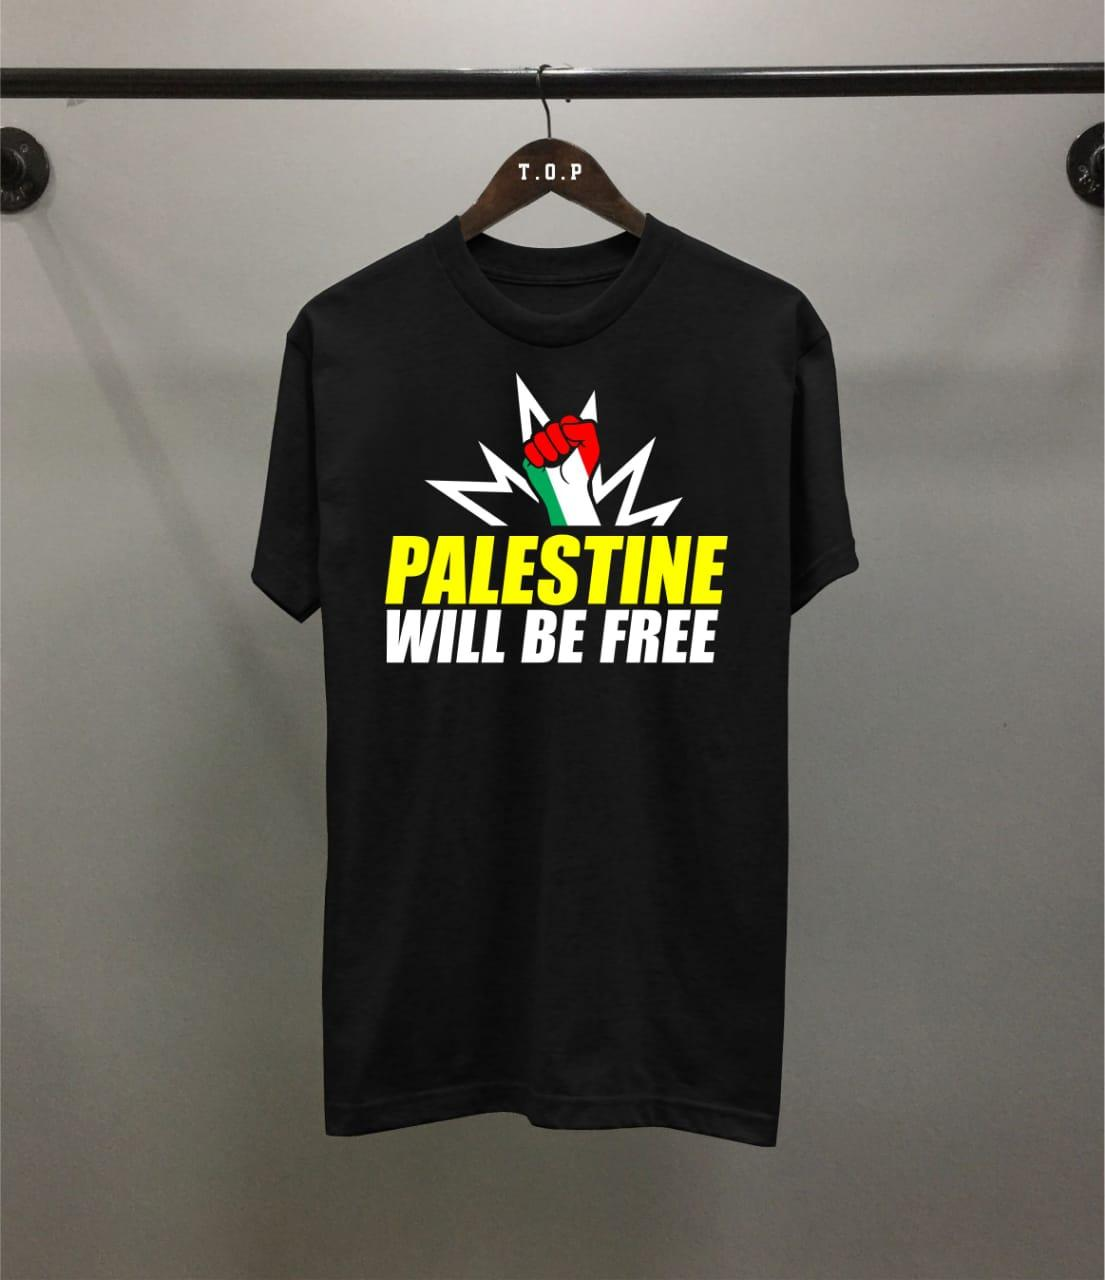 Grosir Kaos Distro Palestine Will Be Free Combed 30S / Atasan Pria / T-Shirt Distro